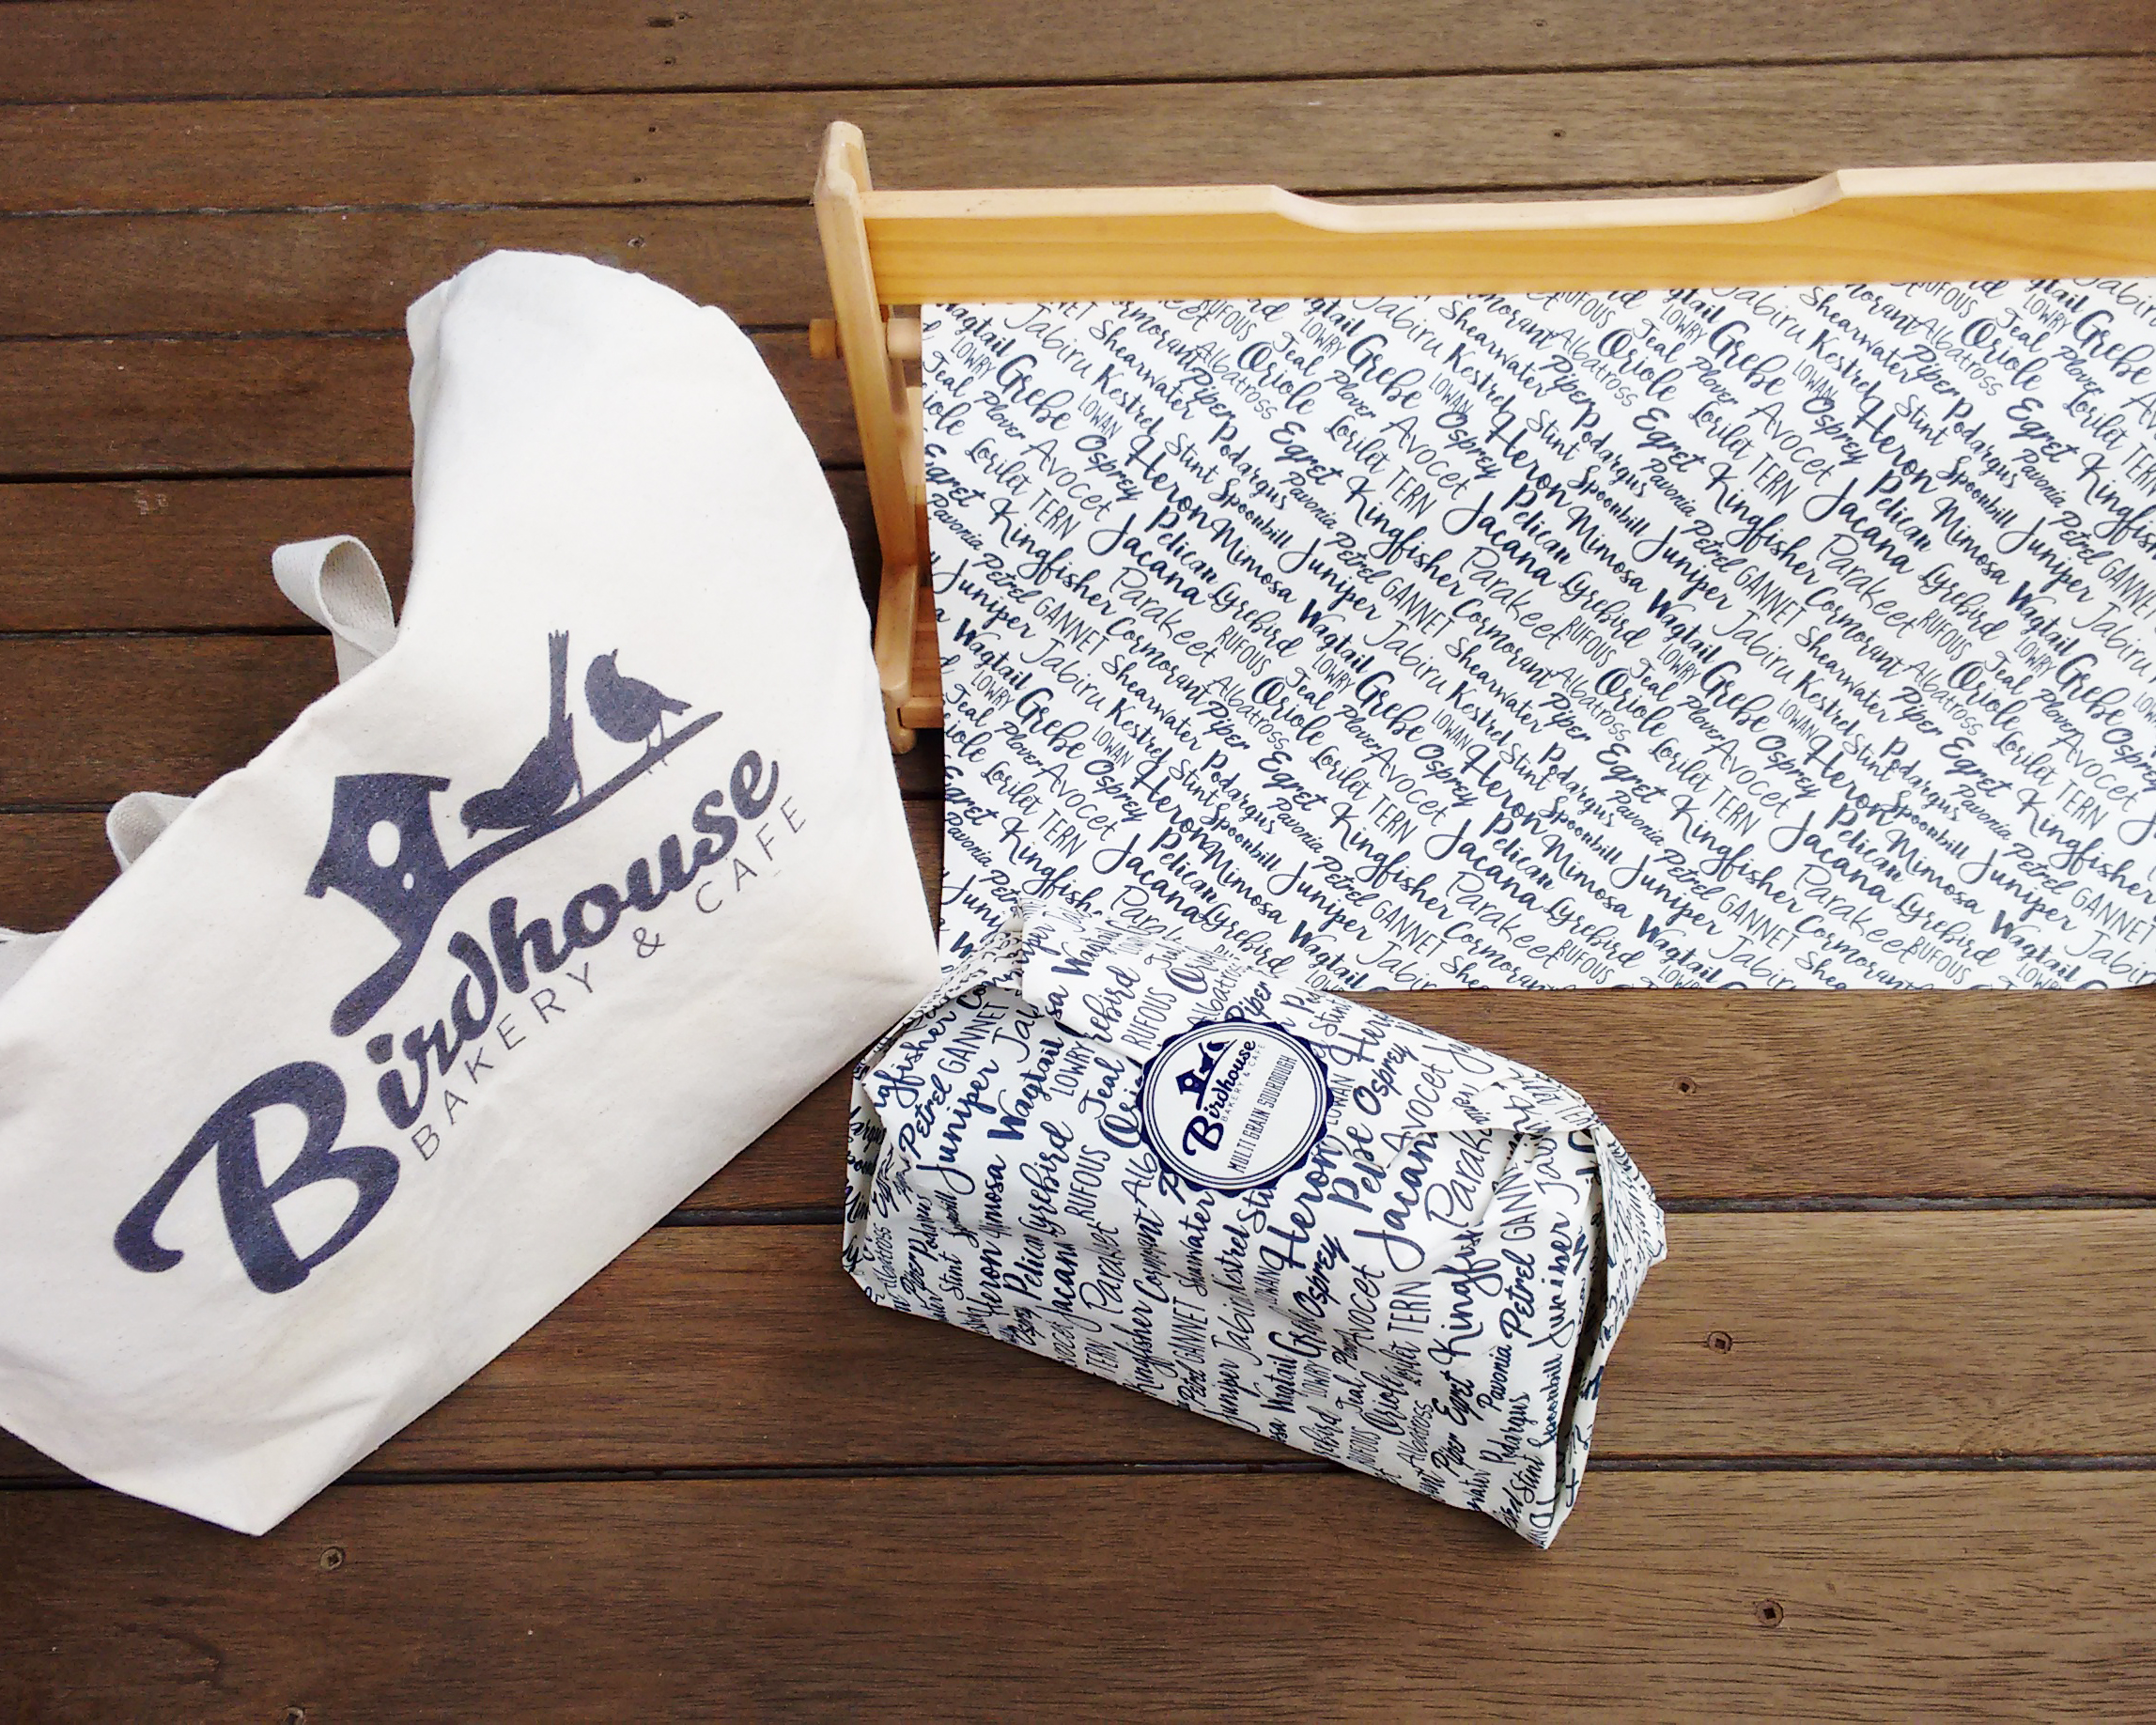 Birdhouse Bakery & Cafe Packaging